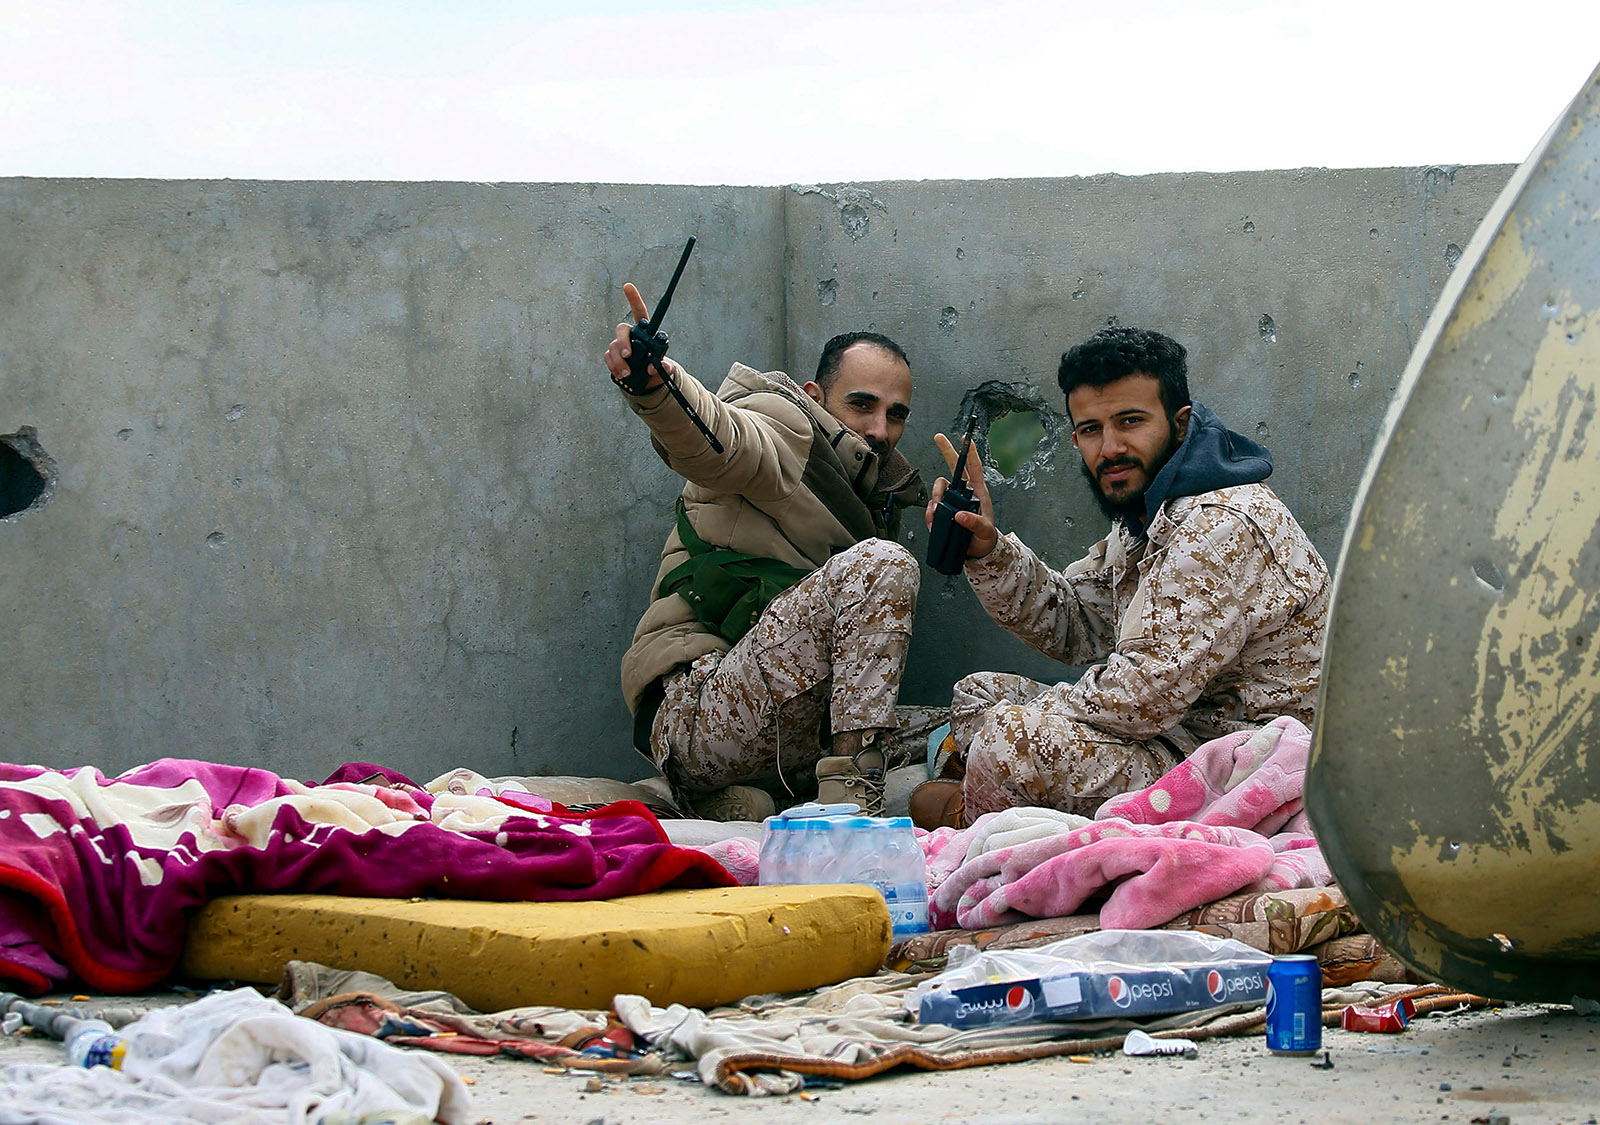 Libyan fighters at a lookout post near Tripoli